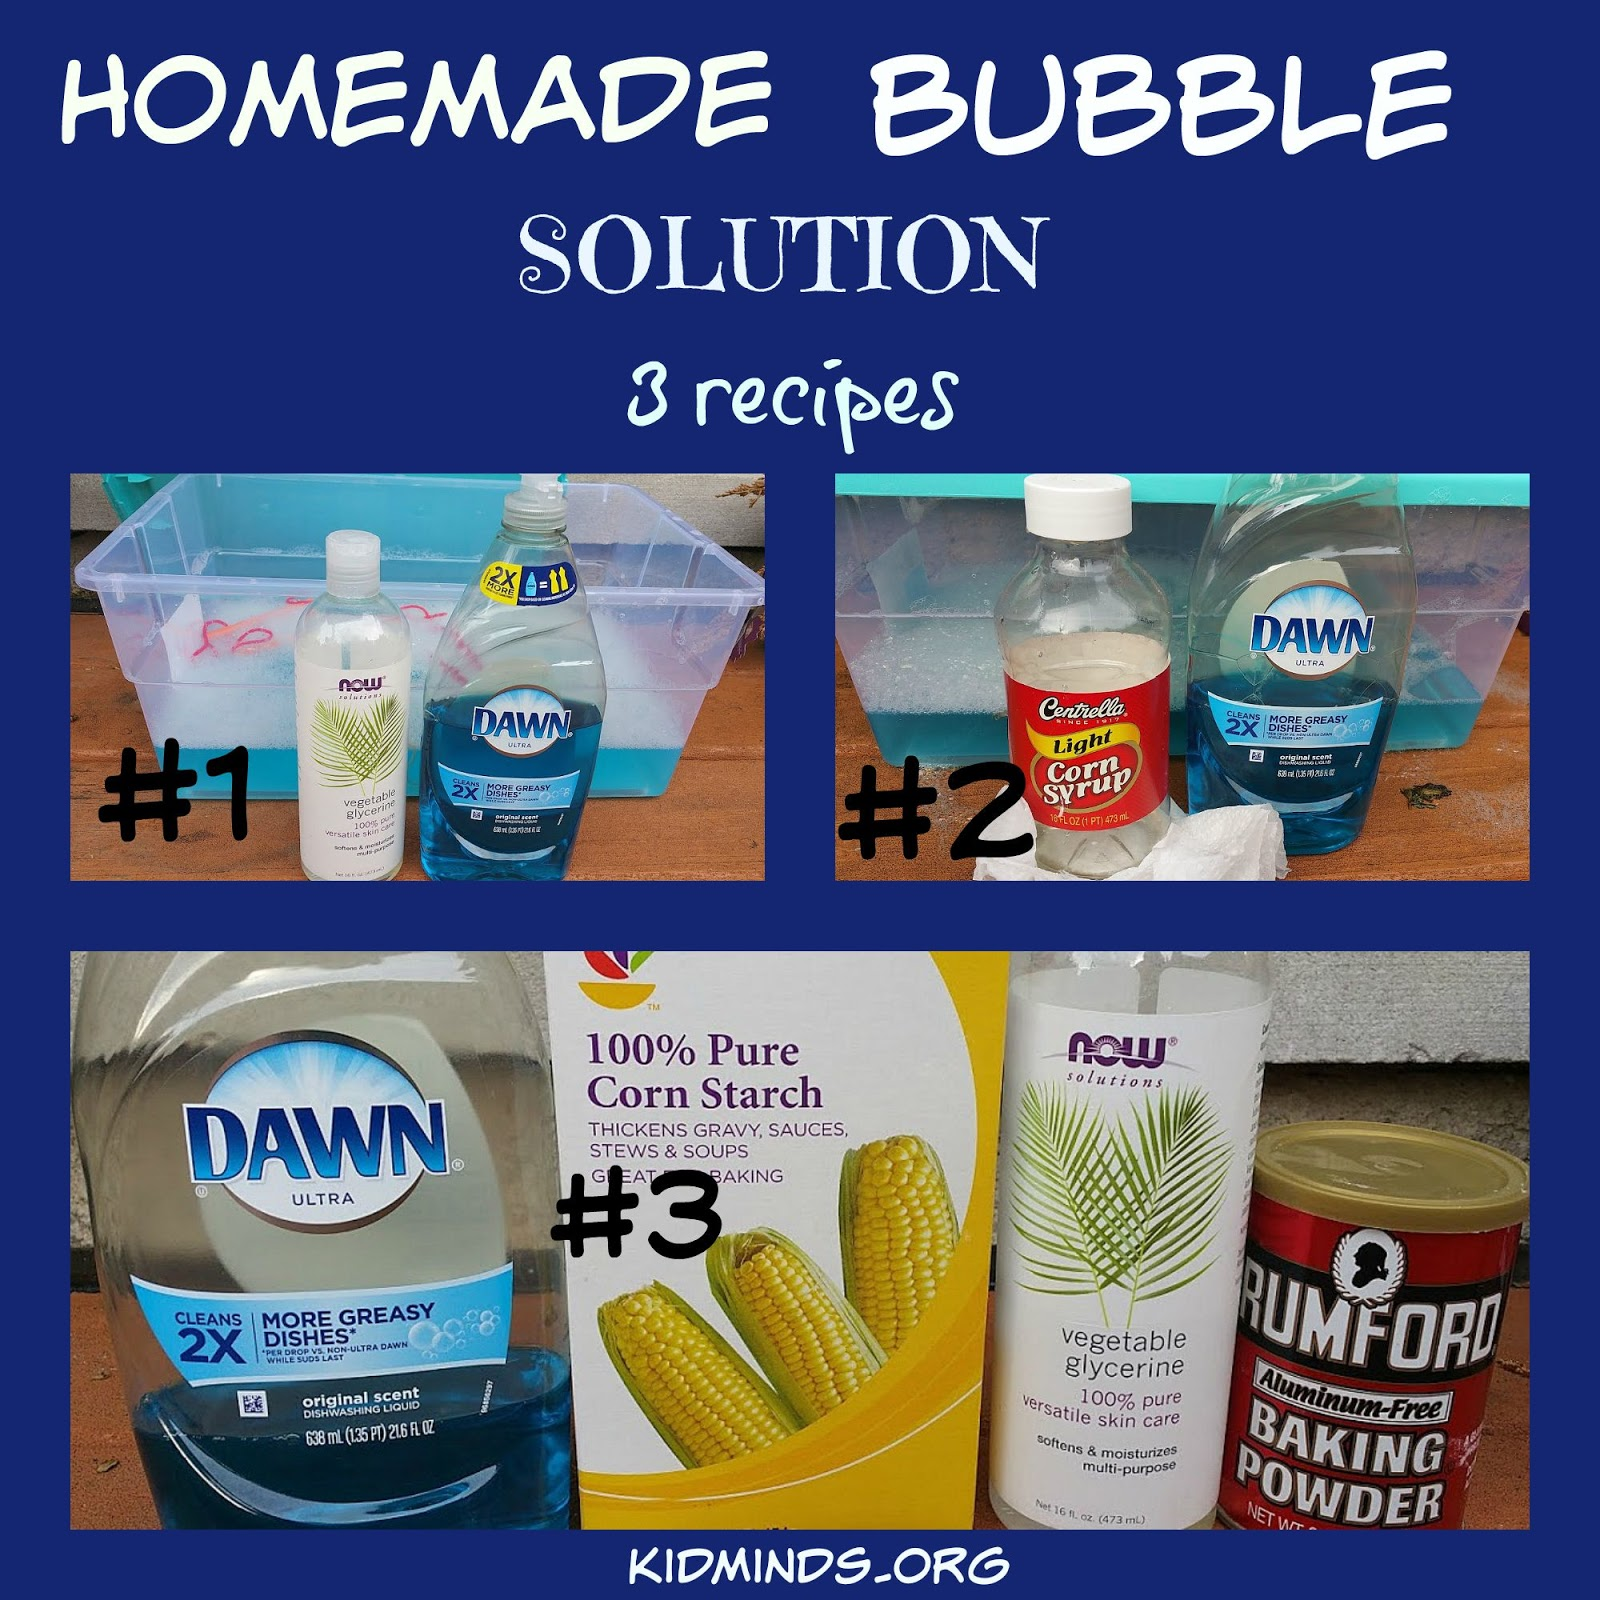 Kid Minds : How to Make Giant Bubbles